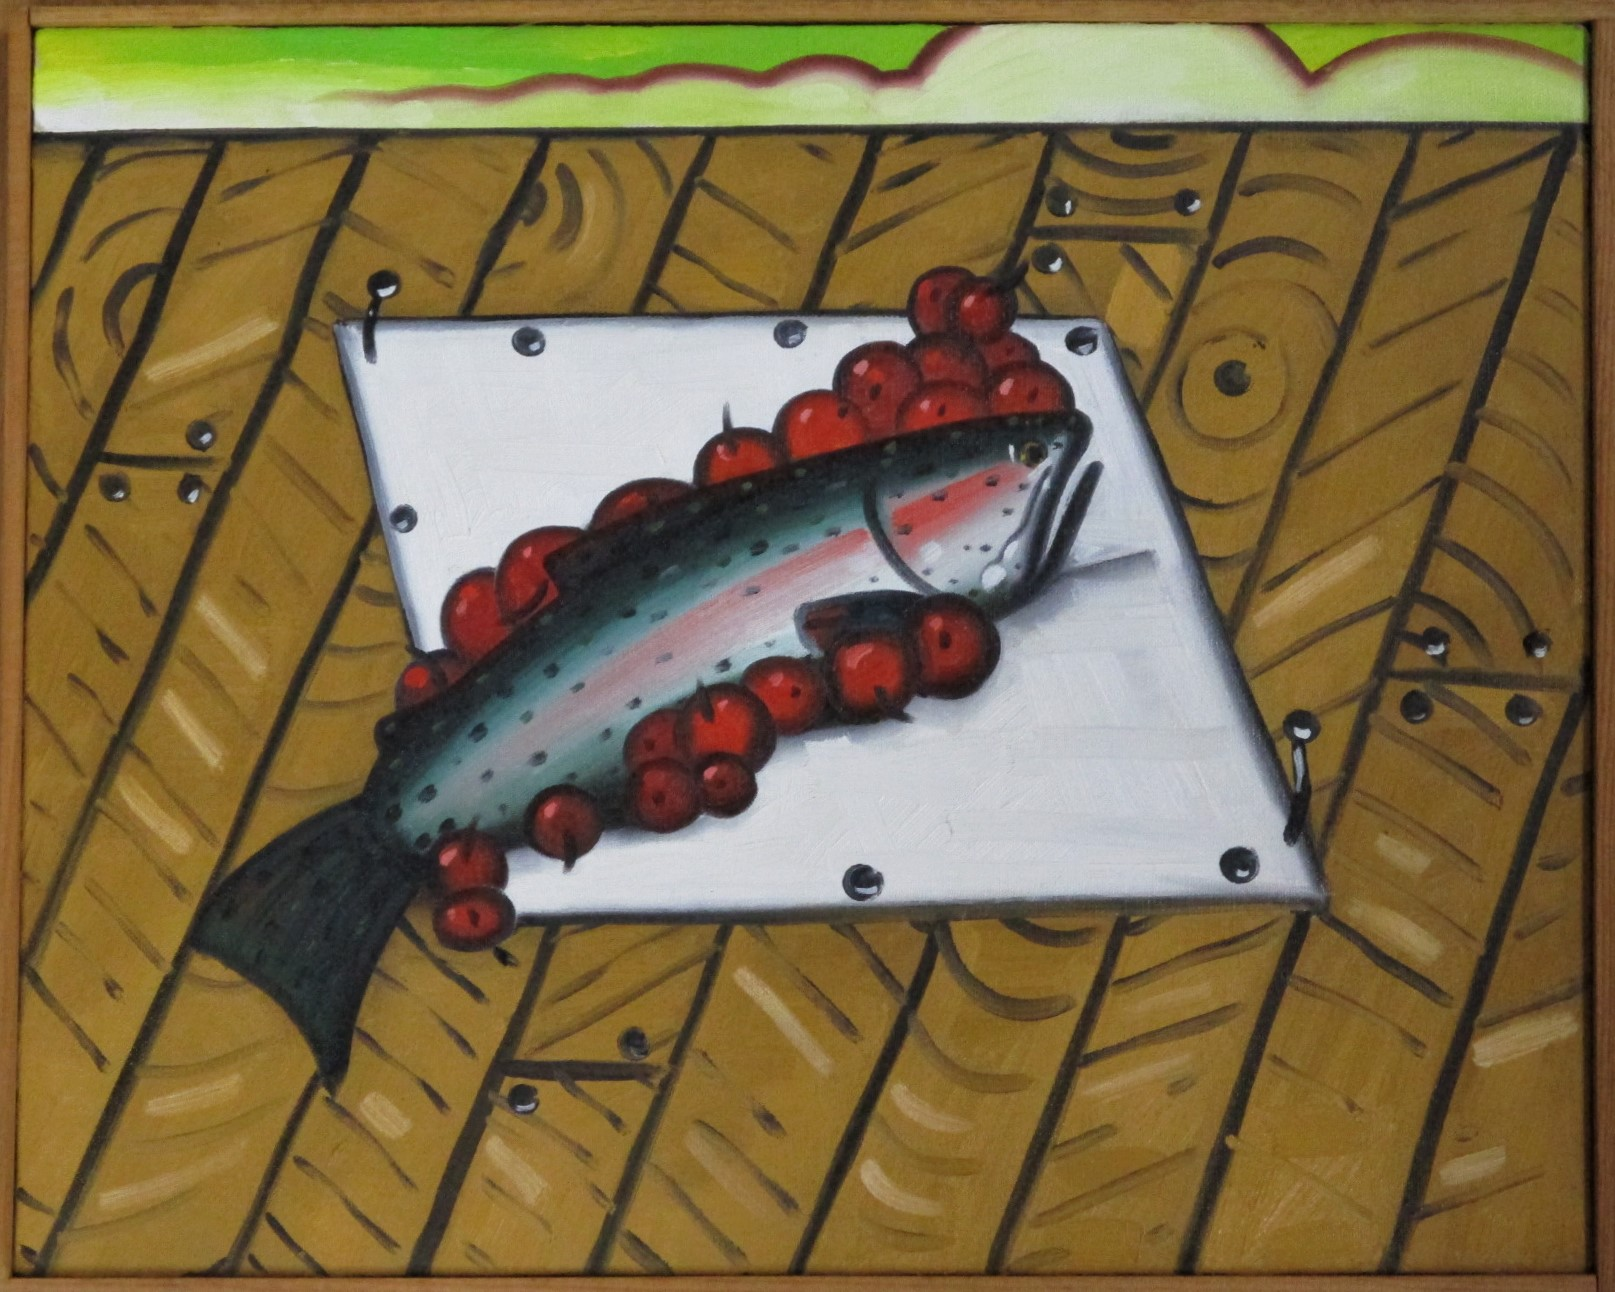 Trout with cherries by  Richard Thompson - Masterpiece Online